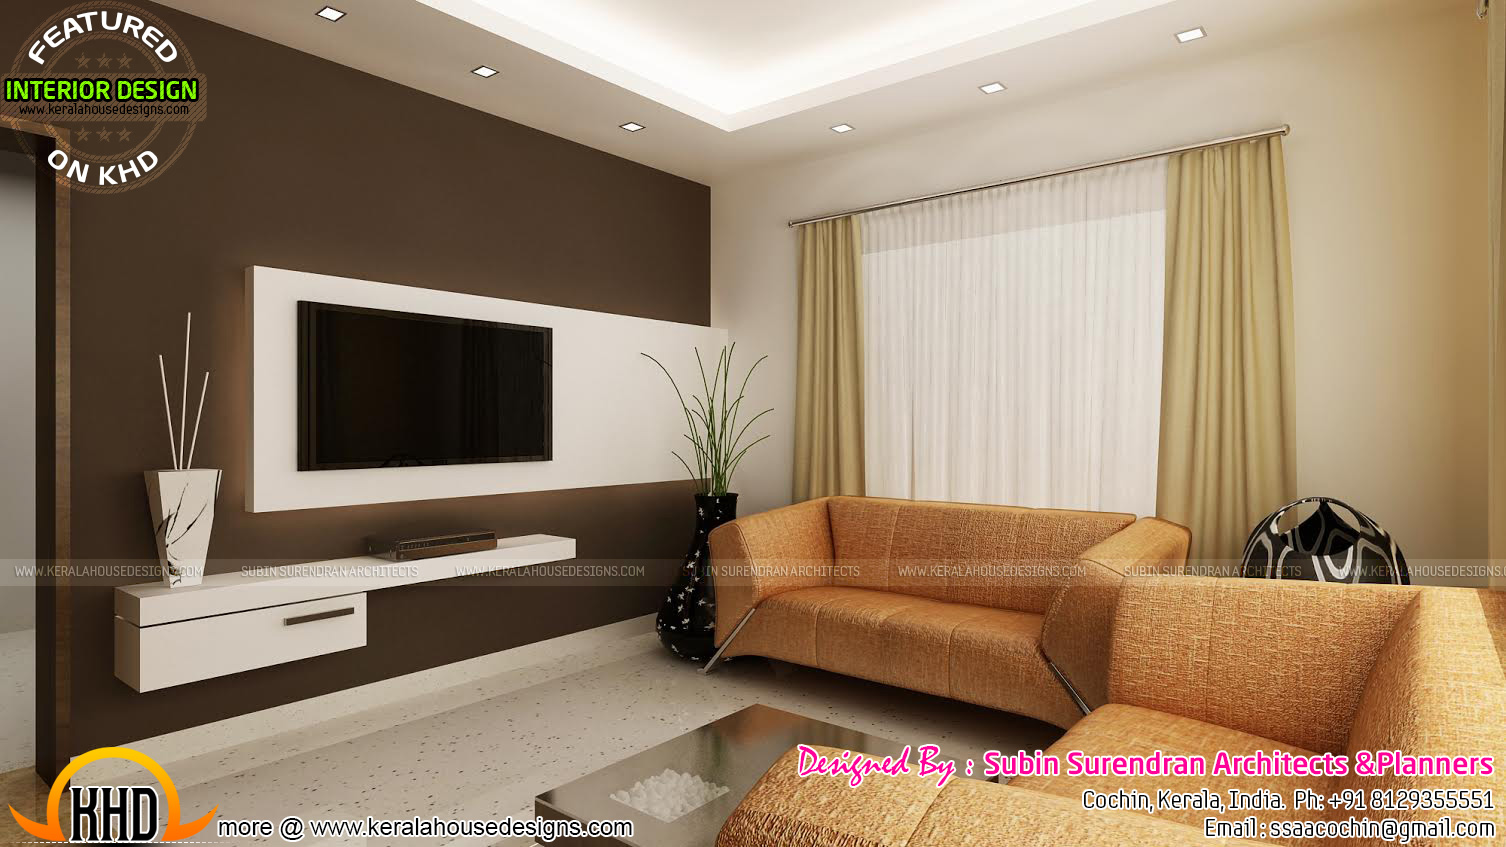 Living rooms modern kitchen interiors in kerala kerala for Interior design of kitchen room in india